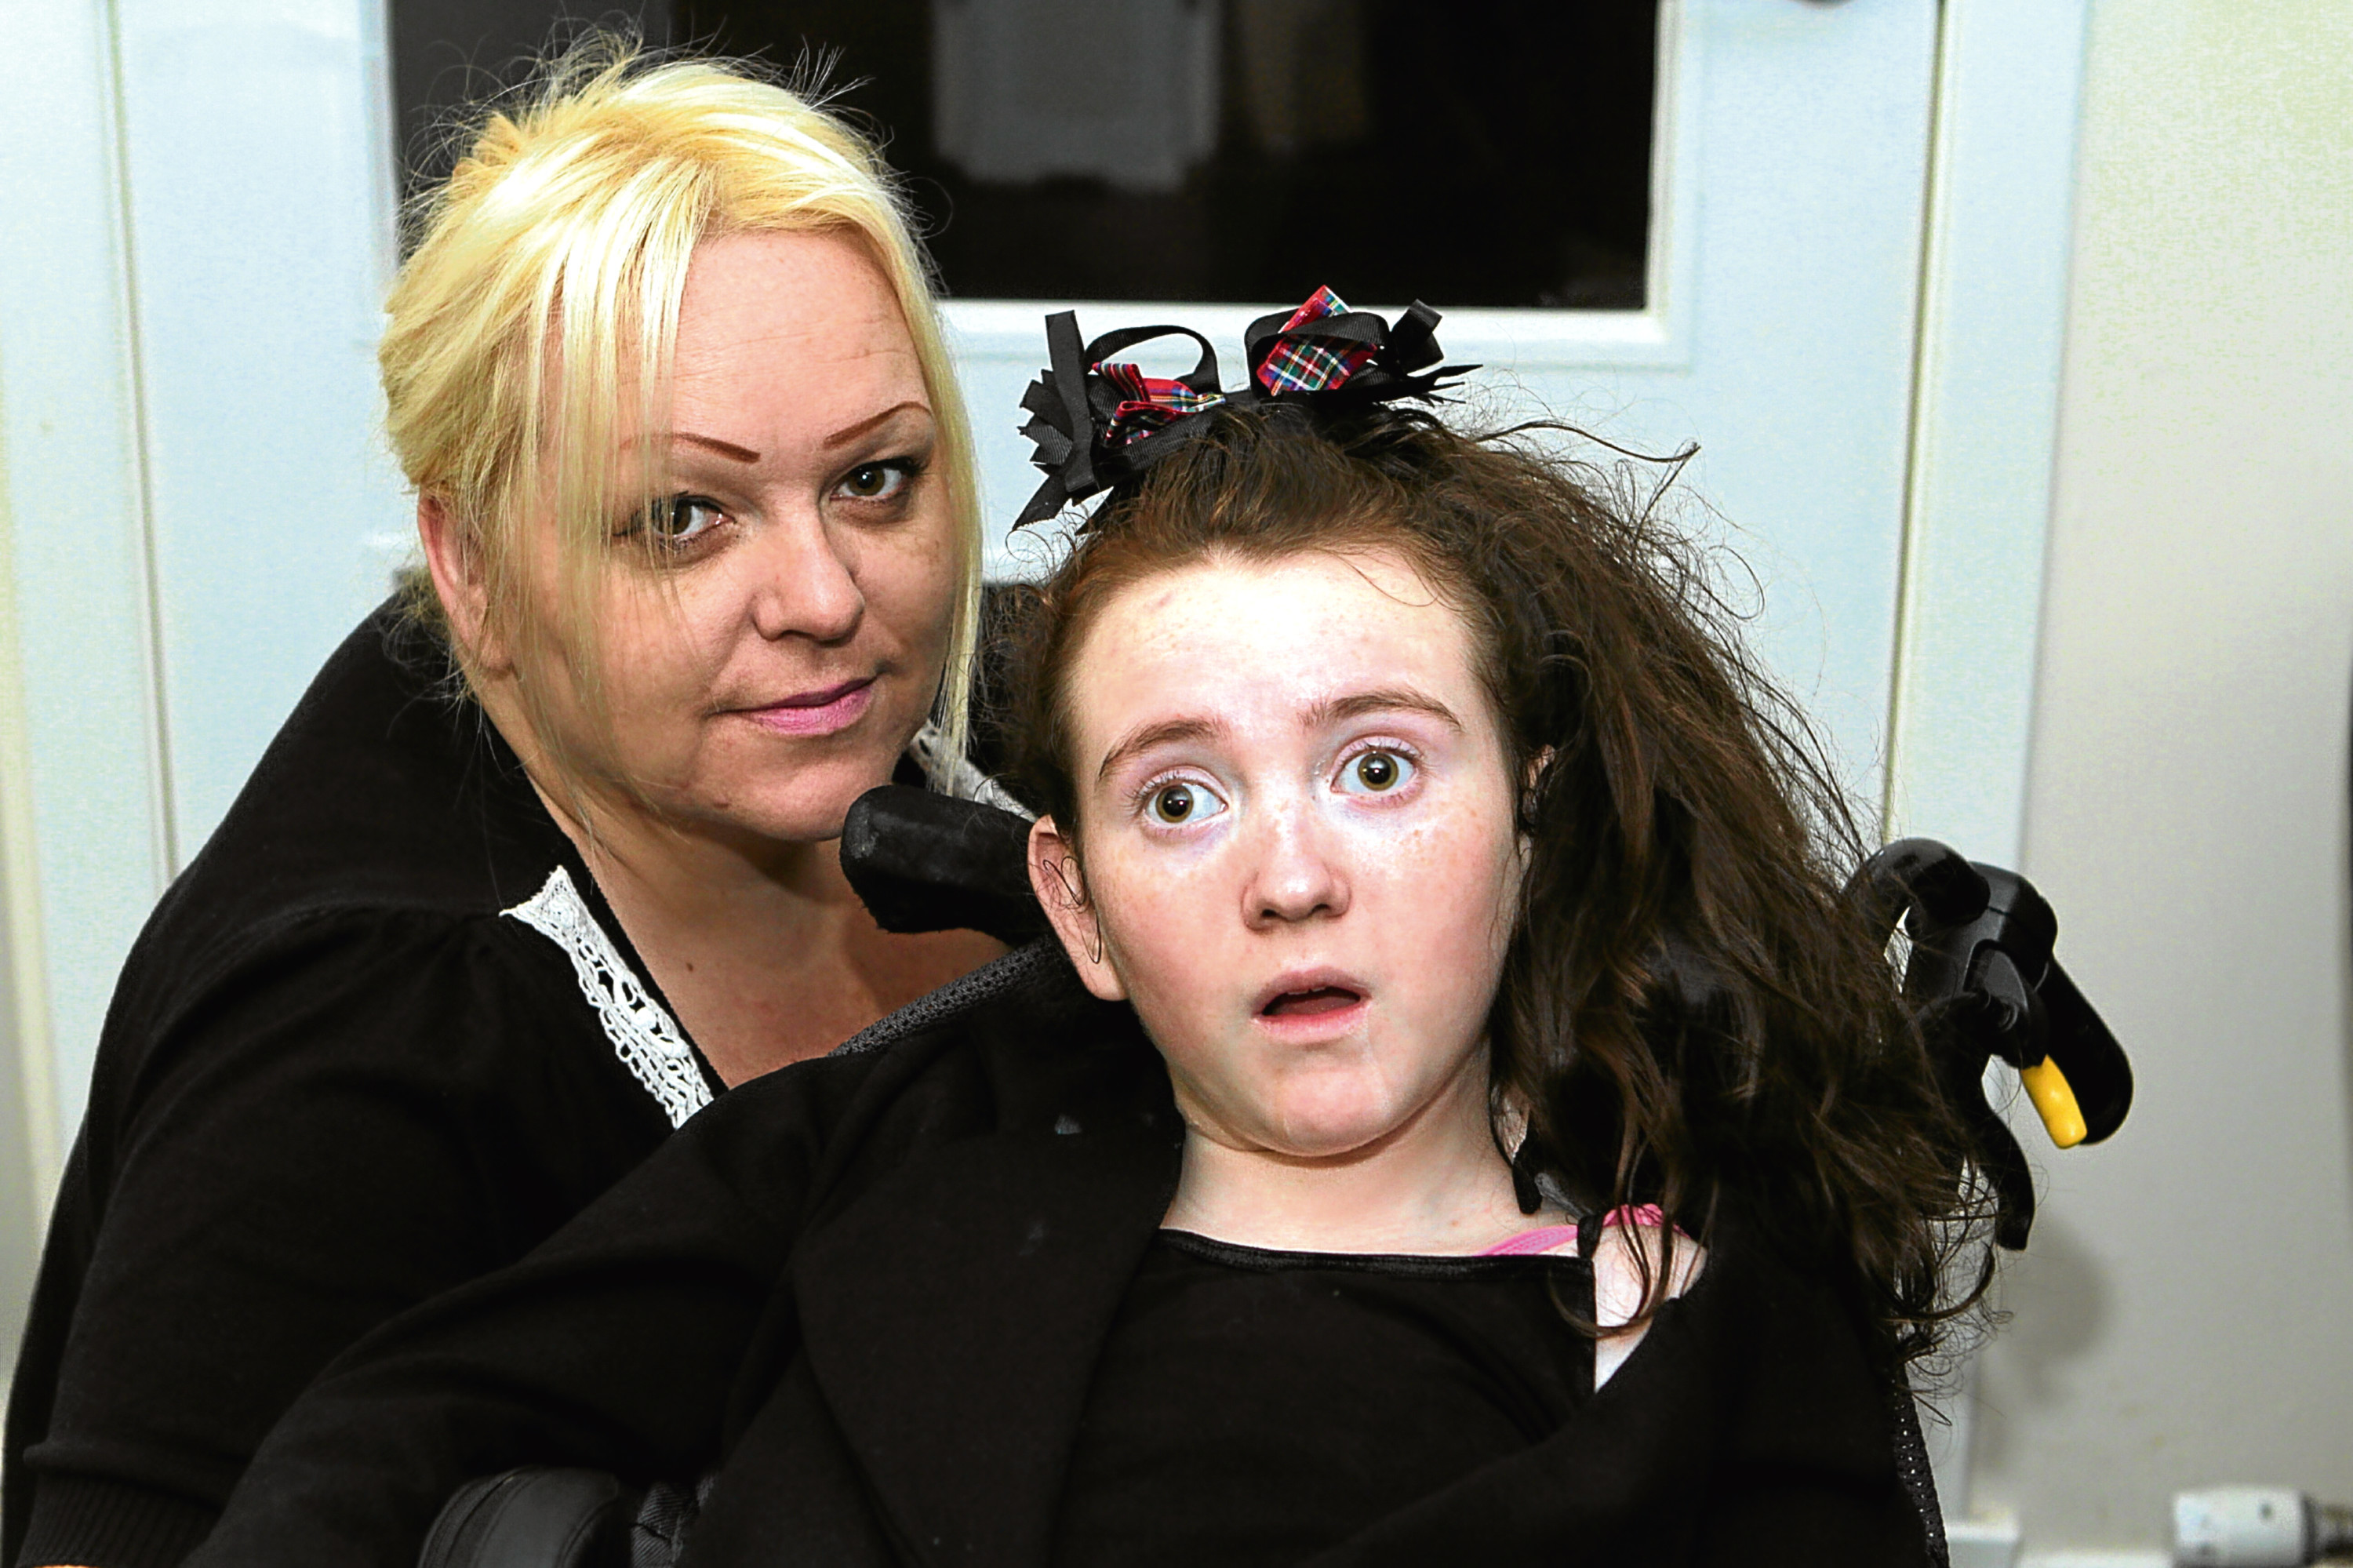 The teenager pictured at home with her mum, Michelle.